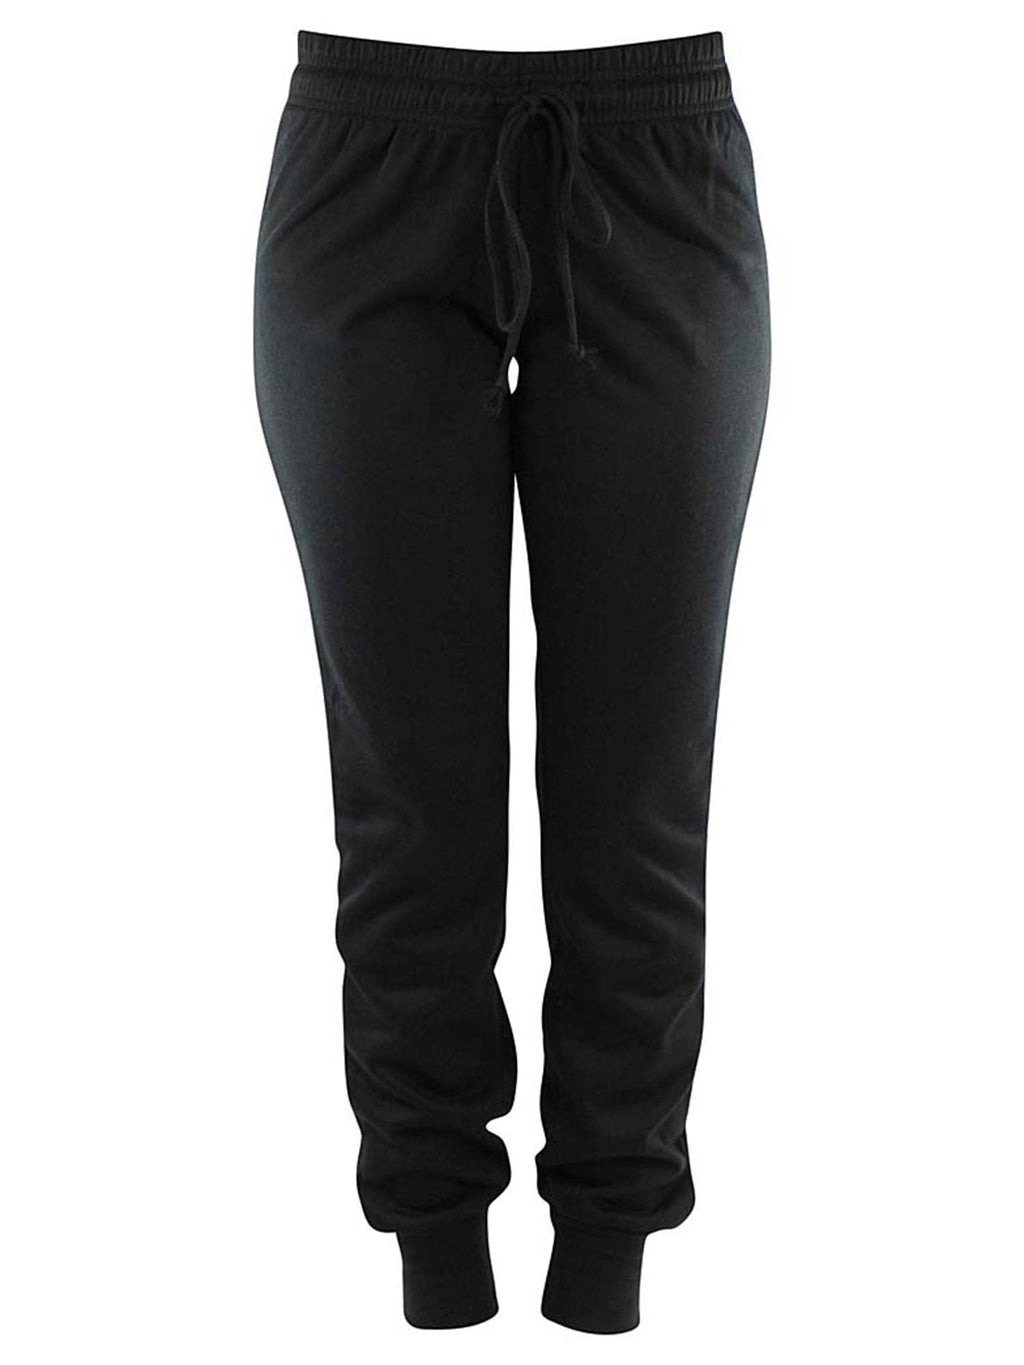 Drawstring Womens Jogger Exercise Sweatpants